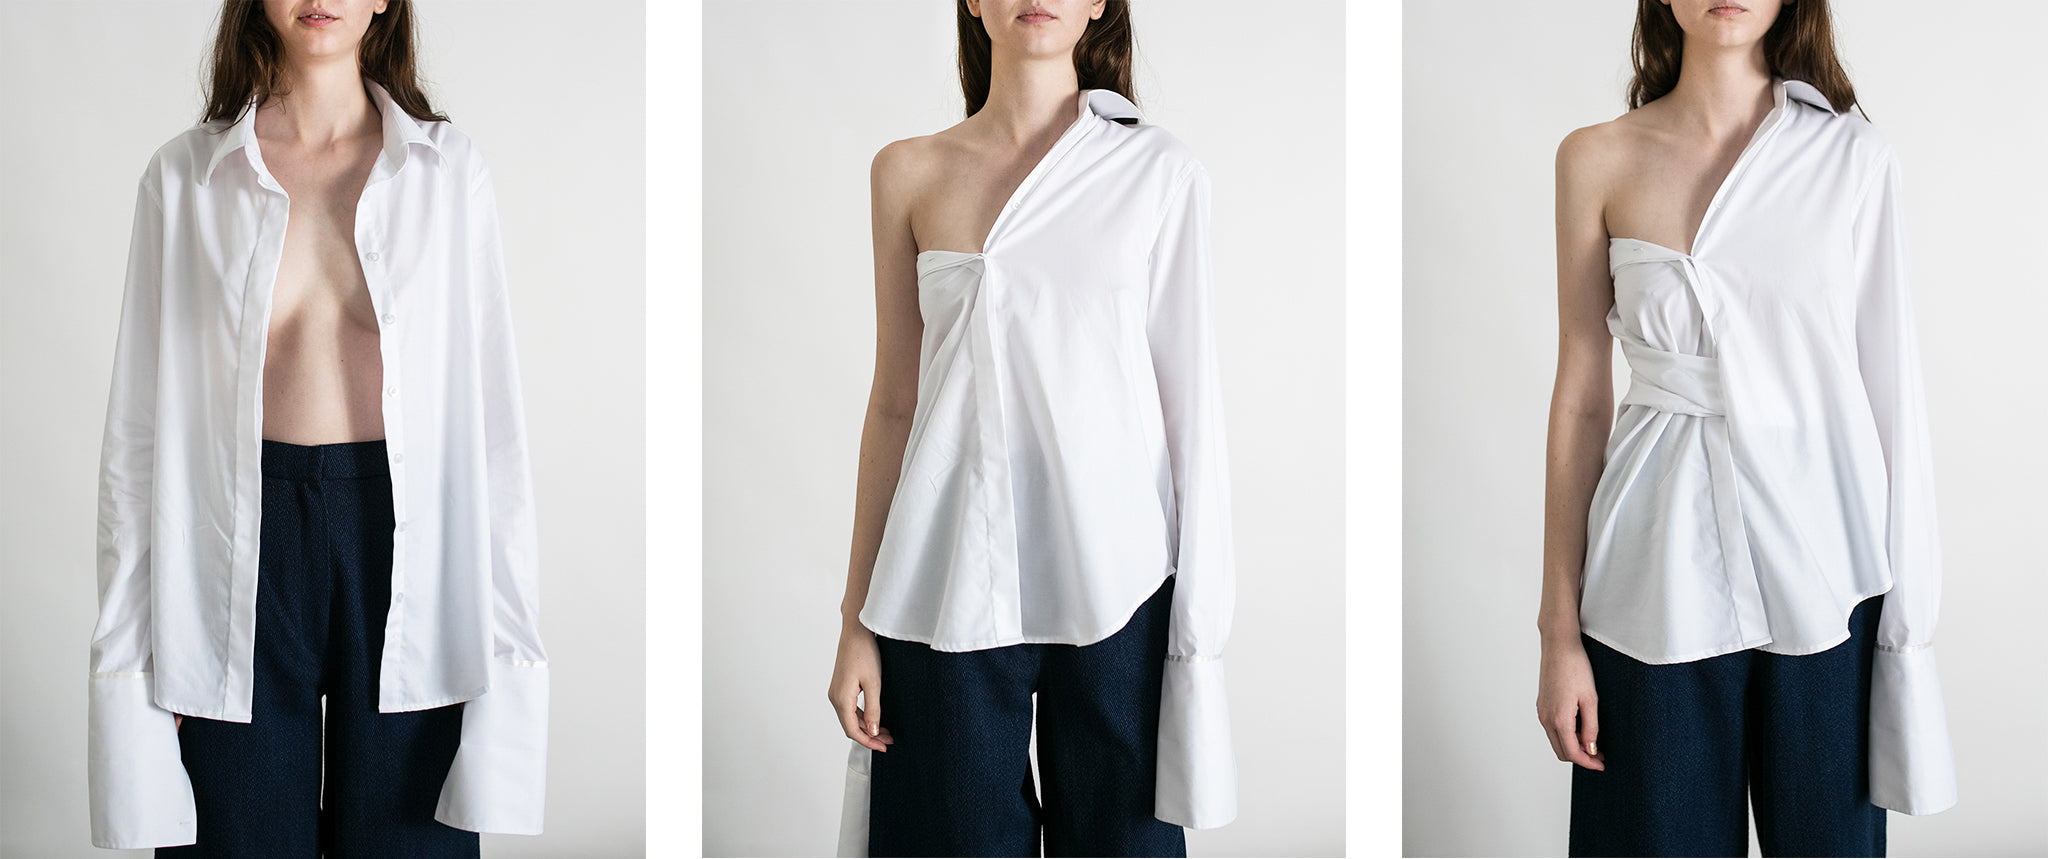 How to fold and tuck shirting anna quan